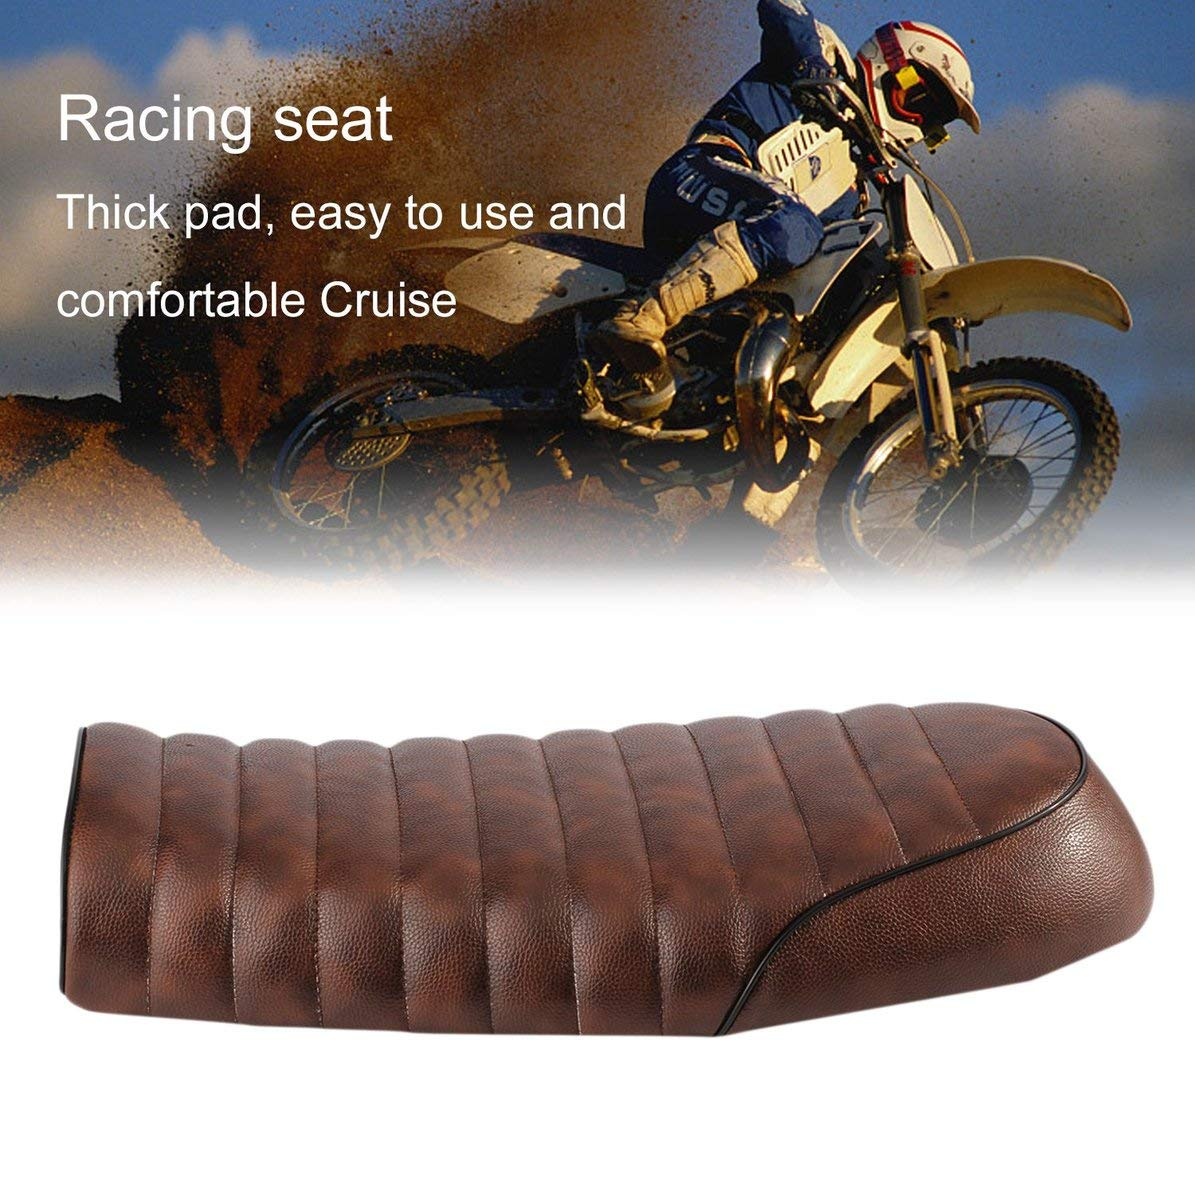 WEIWEITOE Universal Cafe Racer Seat Made of Waterproof Leather Padded with Sponge Universal for Honda CG Series Motorcycle,coffee,